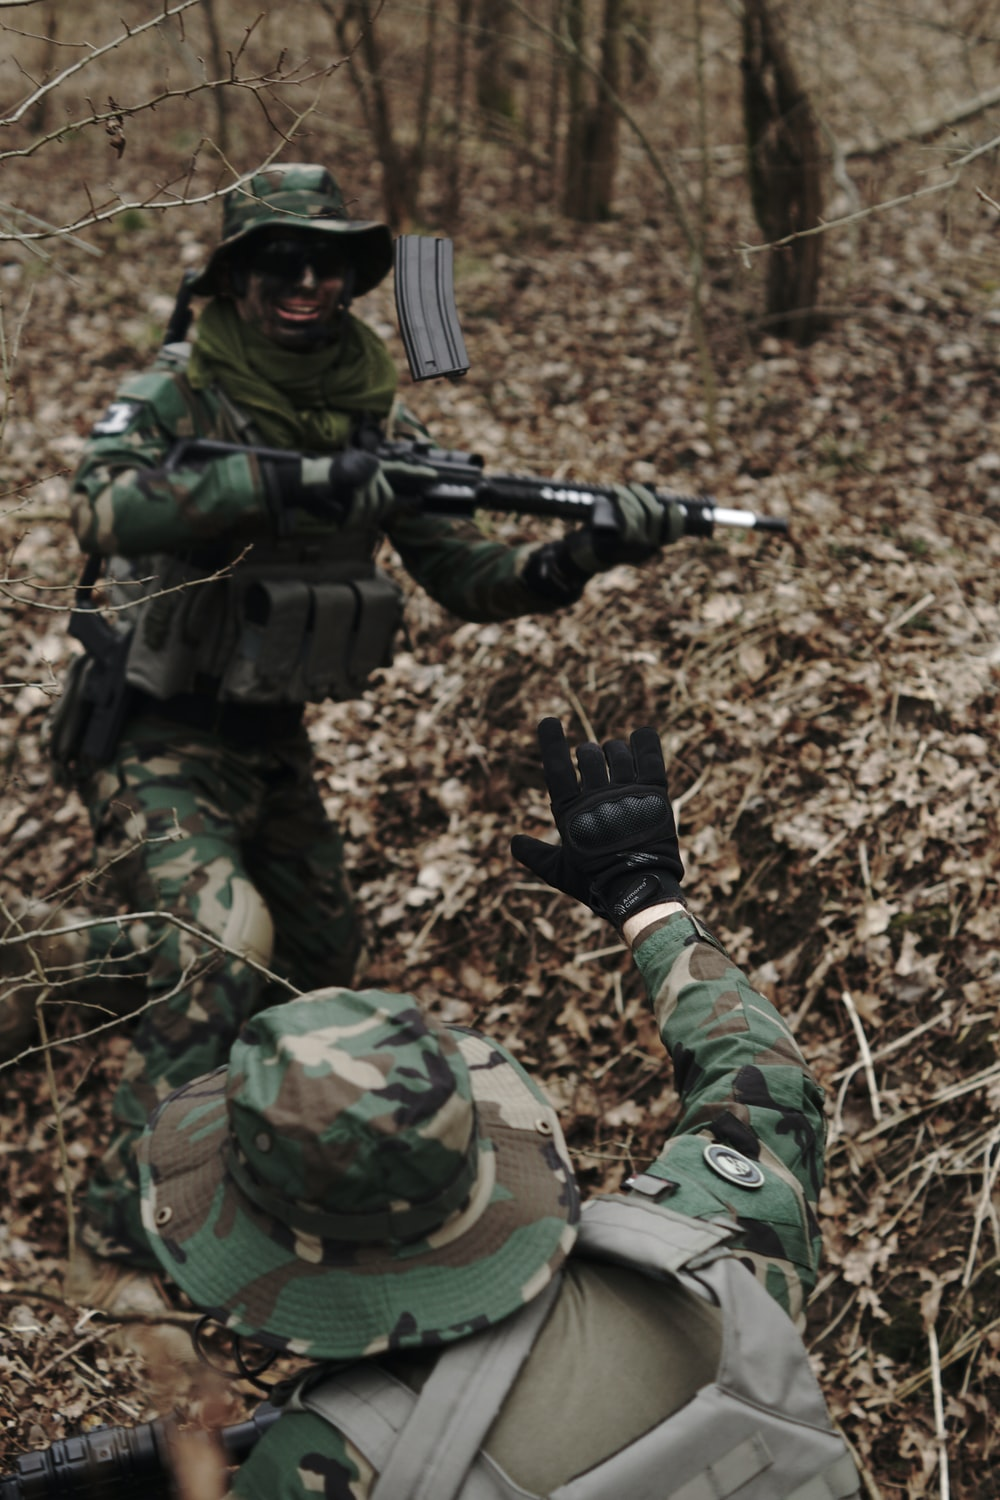 man holding assault rifle in the middle of forest